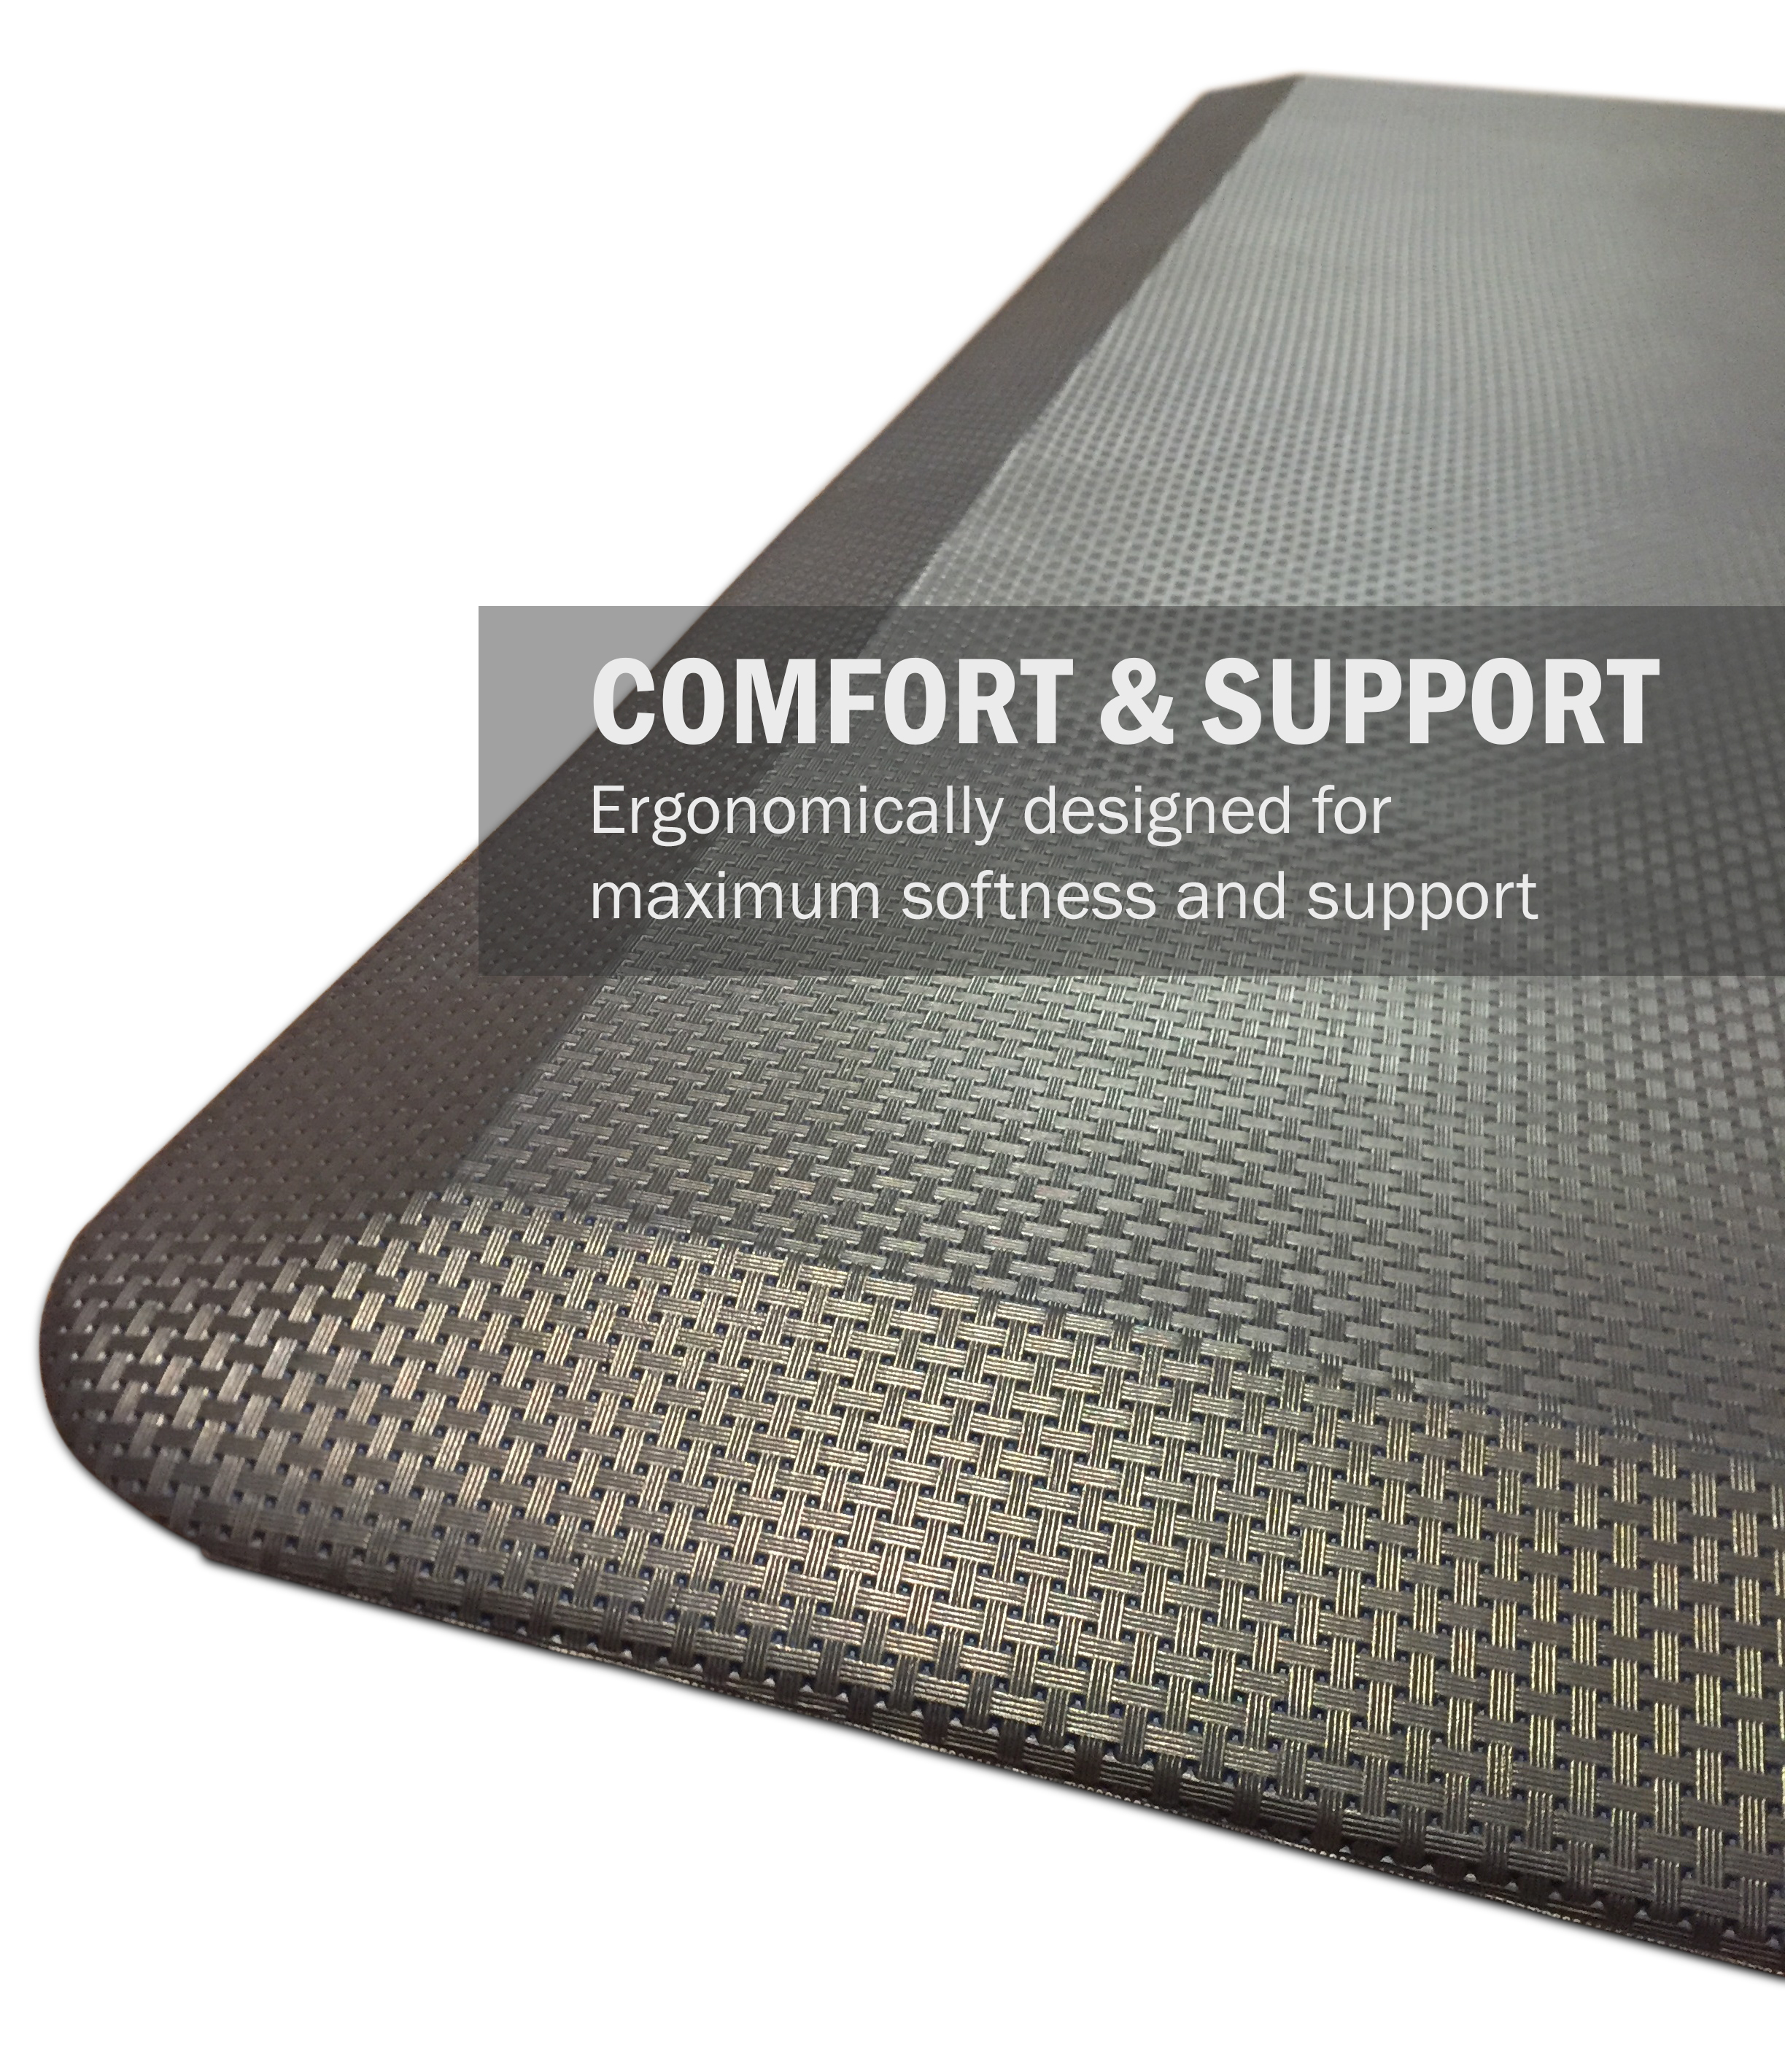 The Stuff4Homes Anti-Fatigue Mat - Comfort and Support